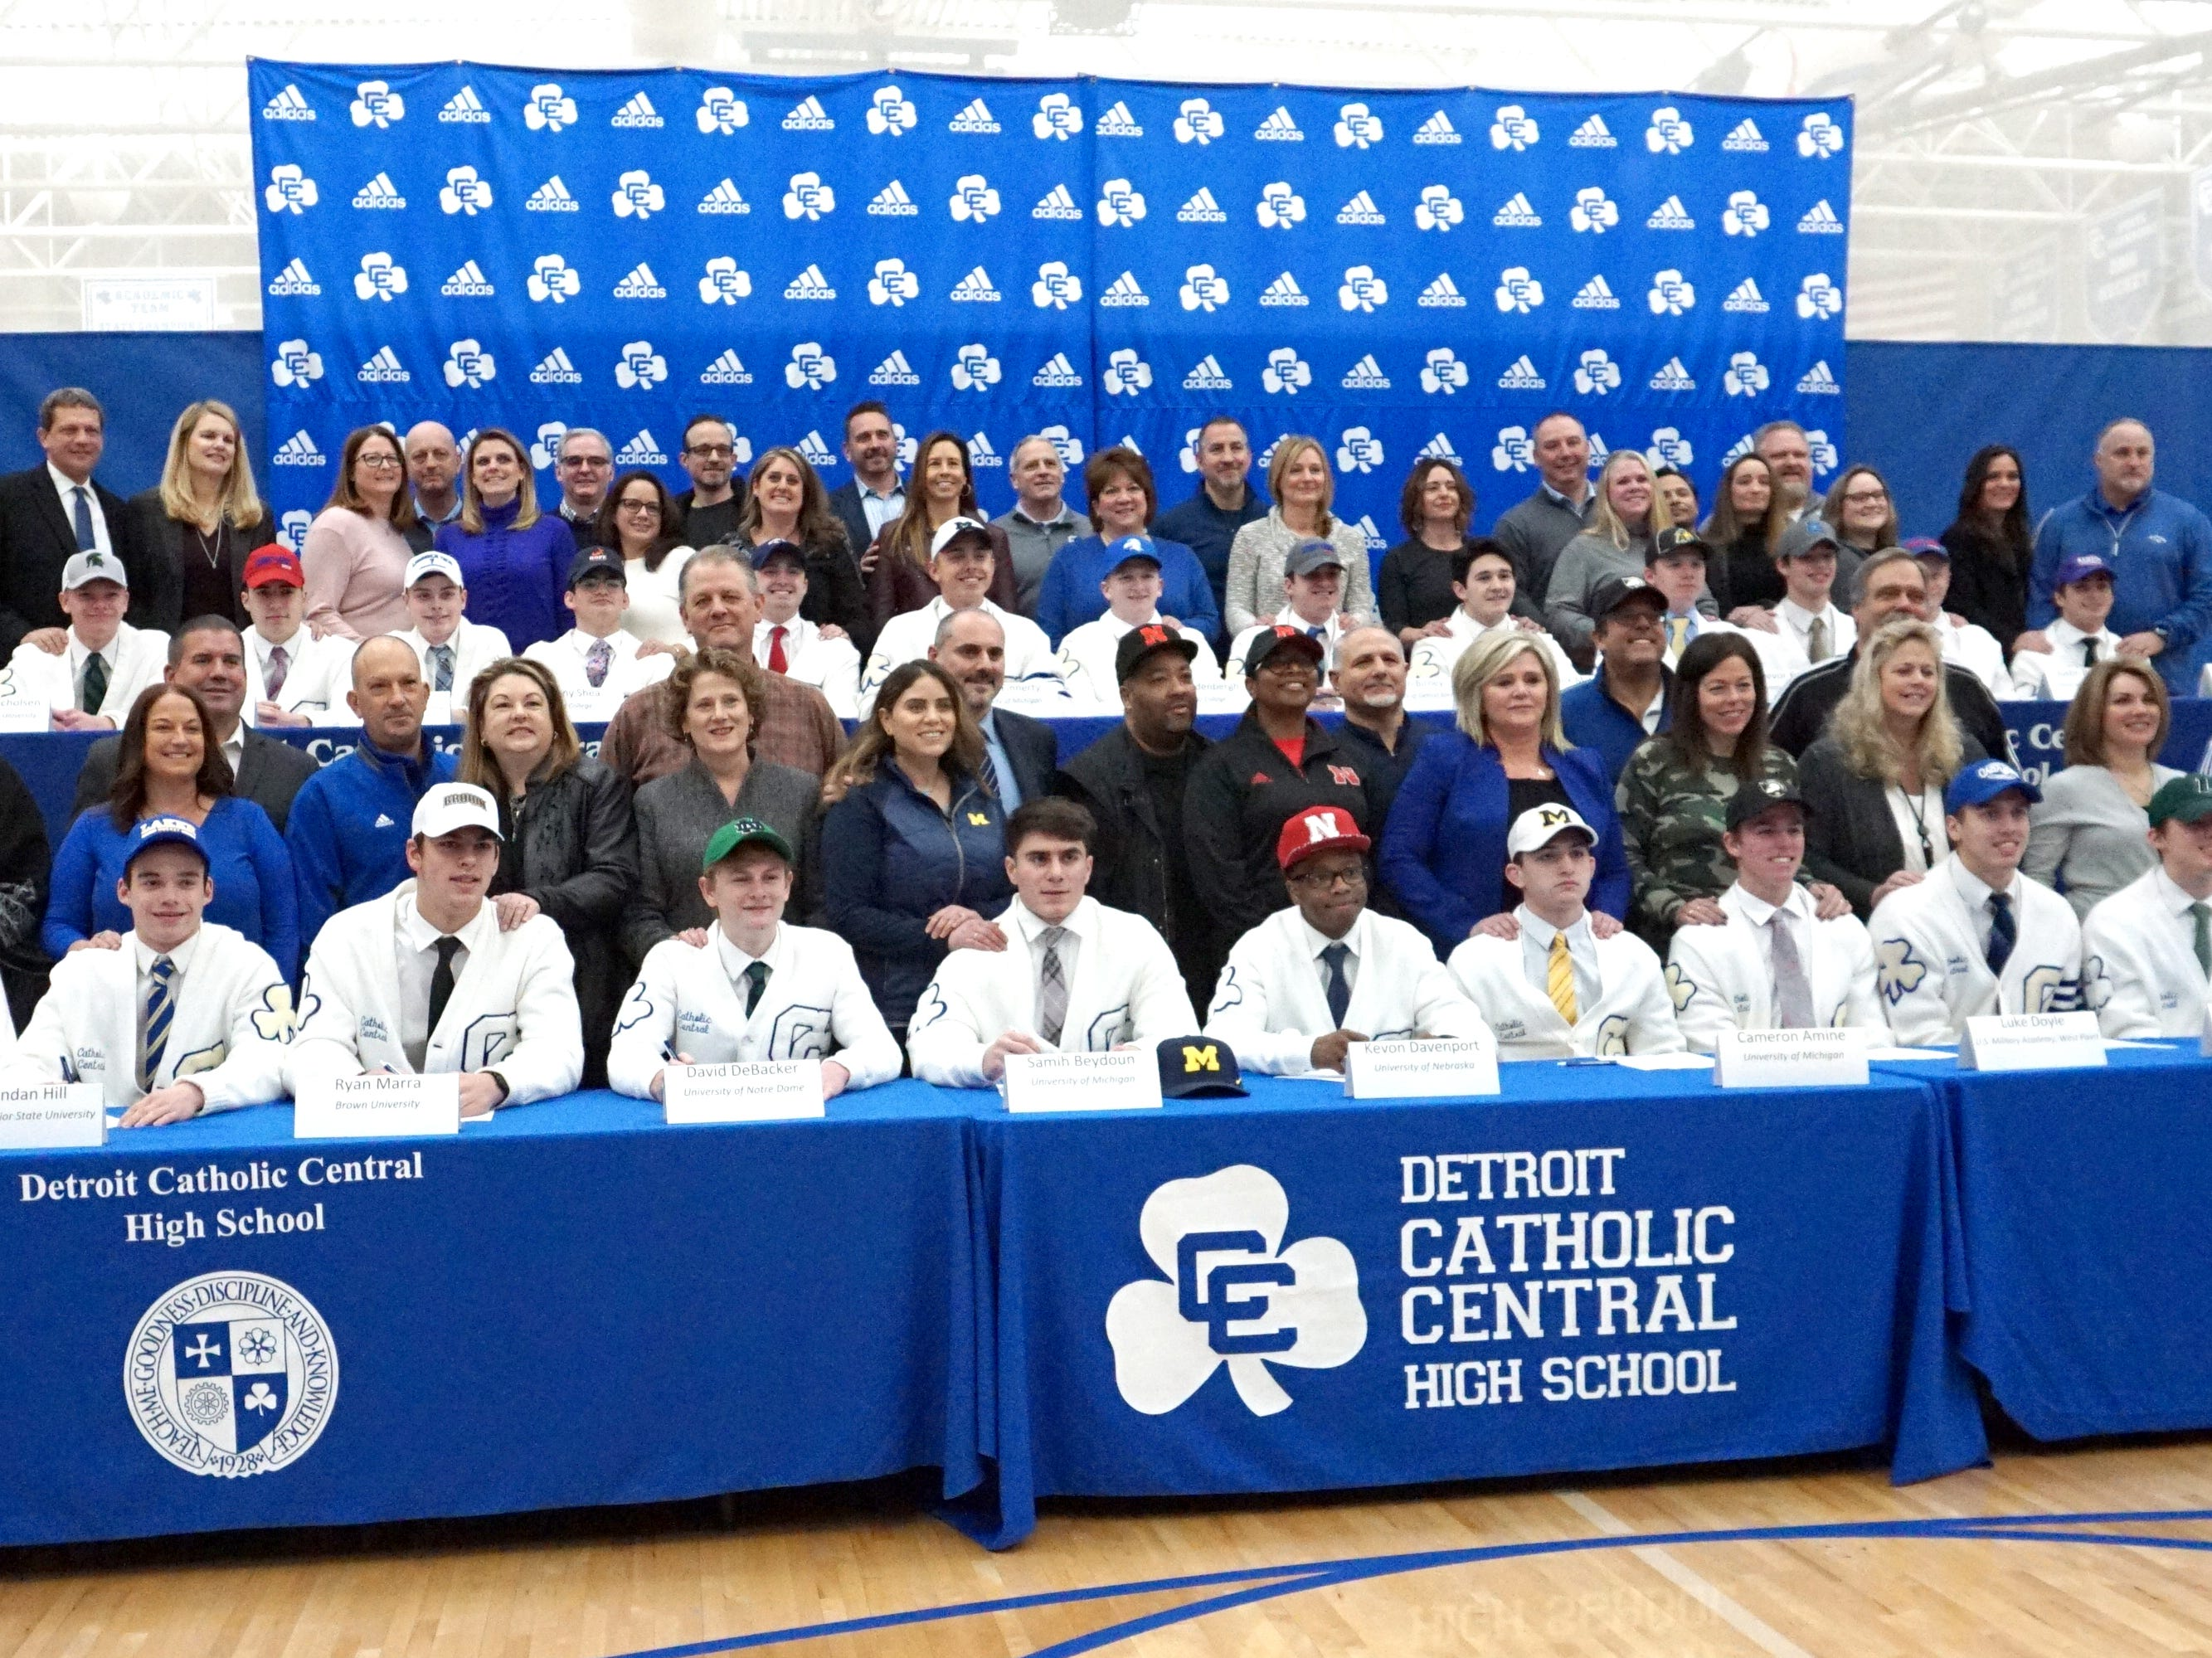 Detroit Catholic Central's 25 scholar-athletes pose with their families on Feb. 7 during the school's Signing Day ceremony.